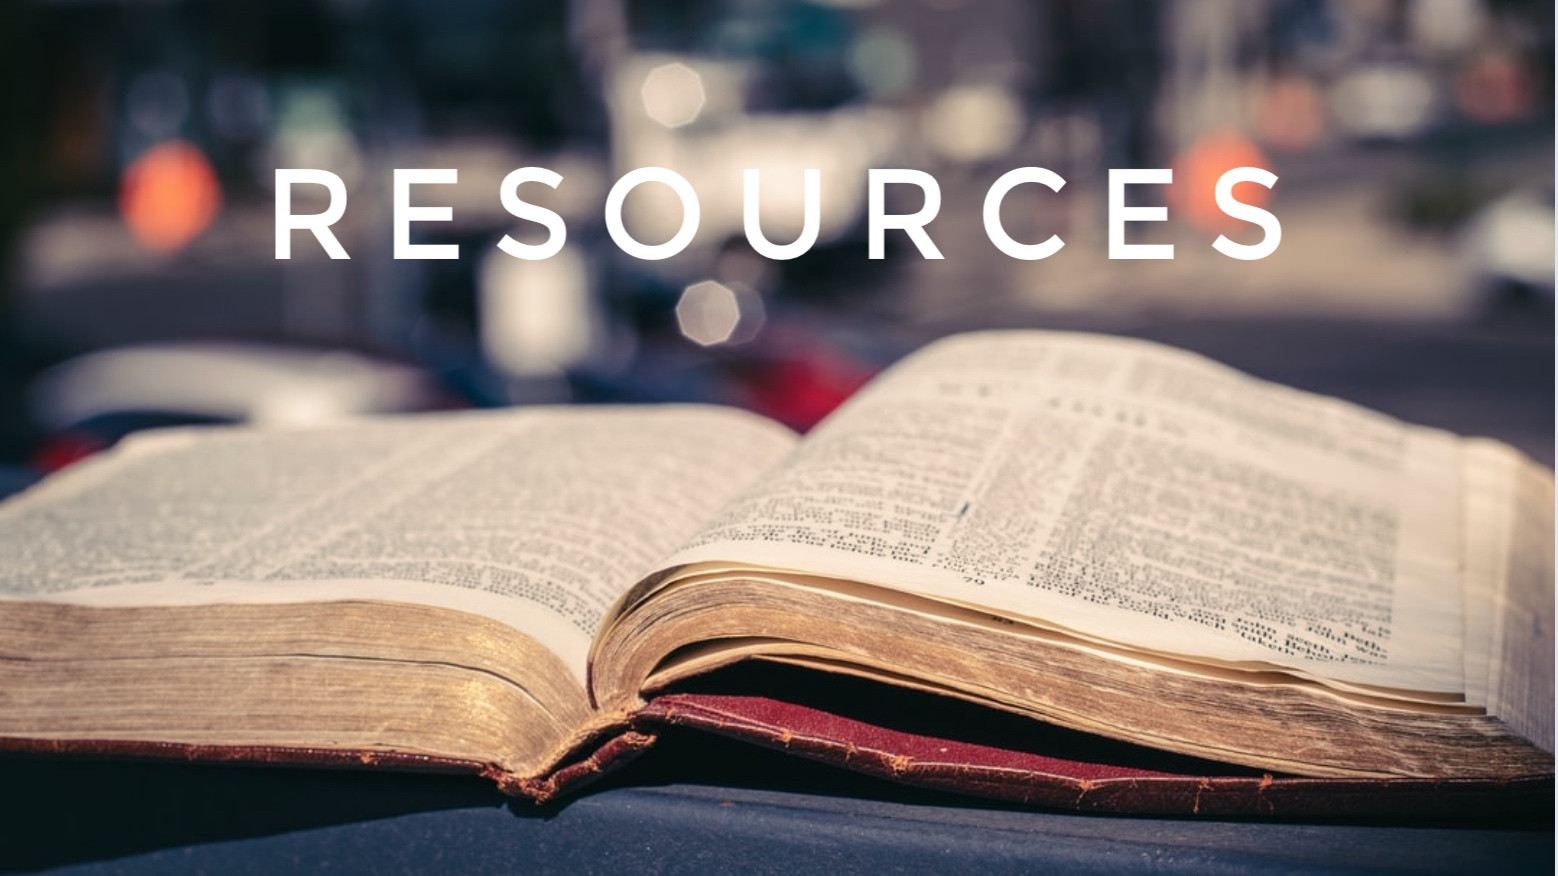 Free Christian Resources